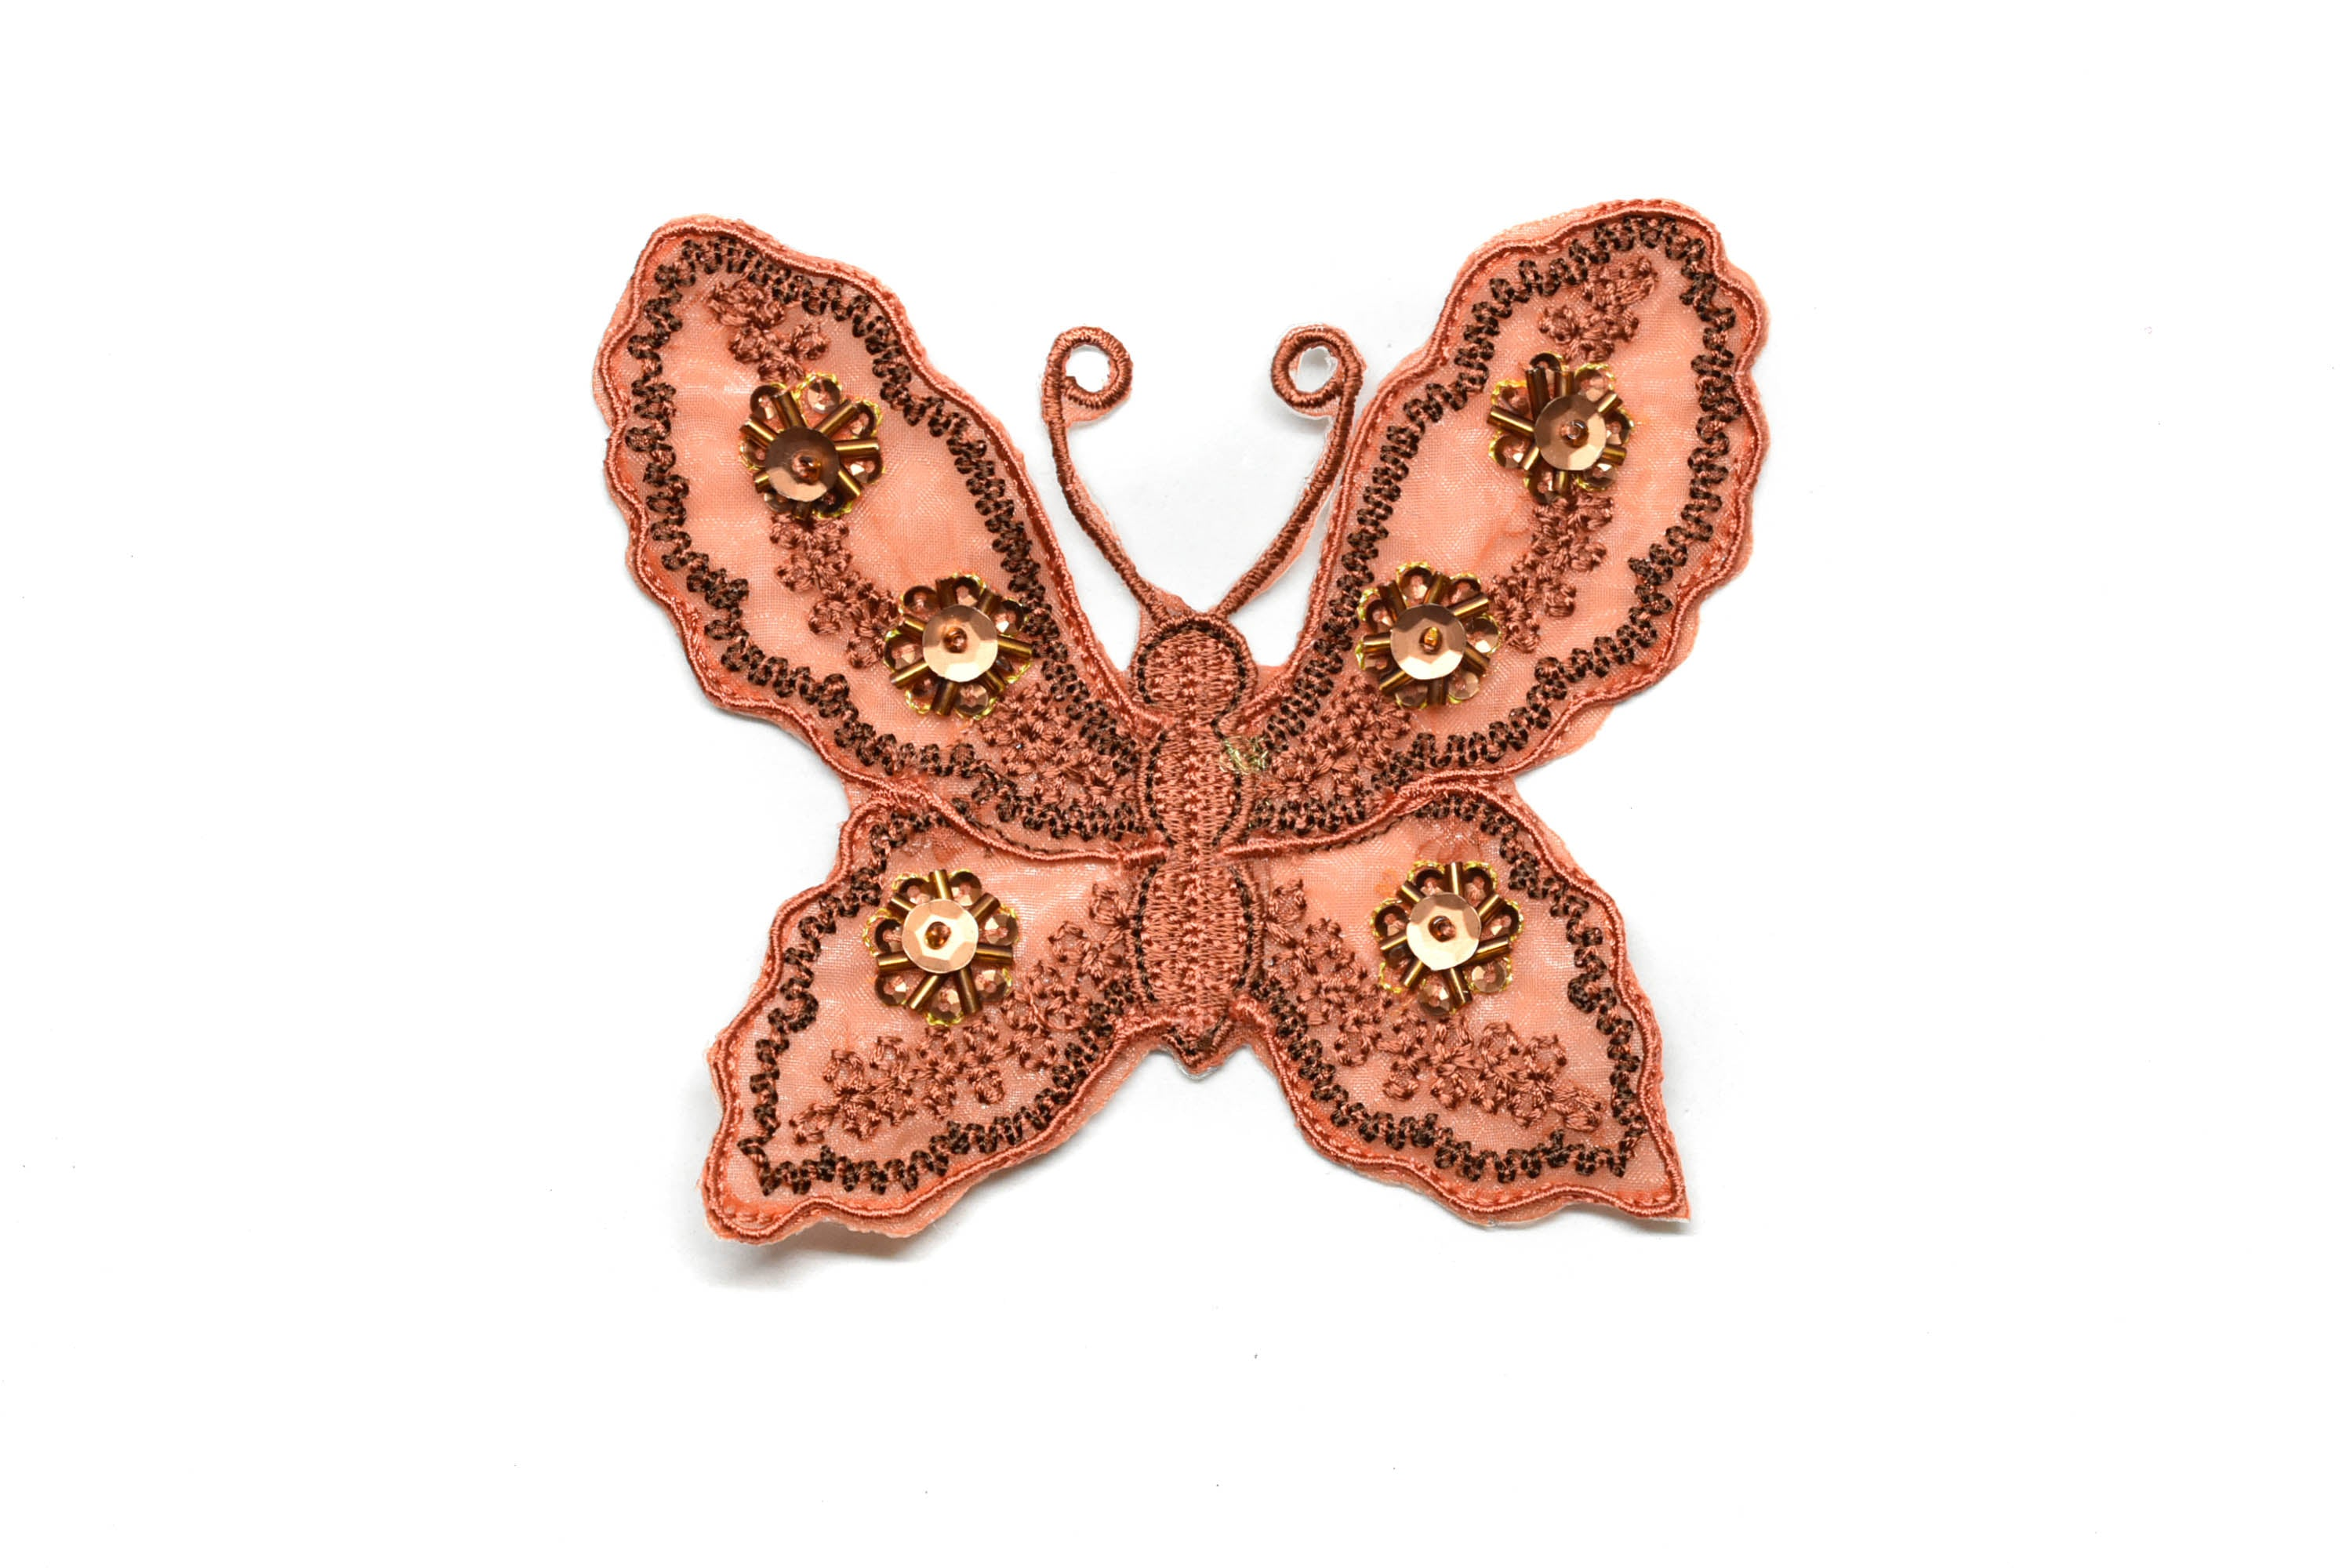 "Beaded Sequins Butterfly Applique 4 1/4"" x 3 1/2"" - 1 Piece"